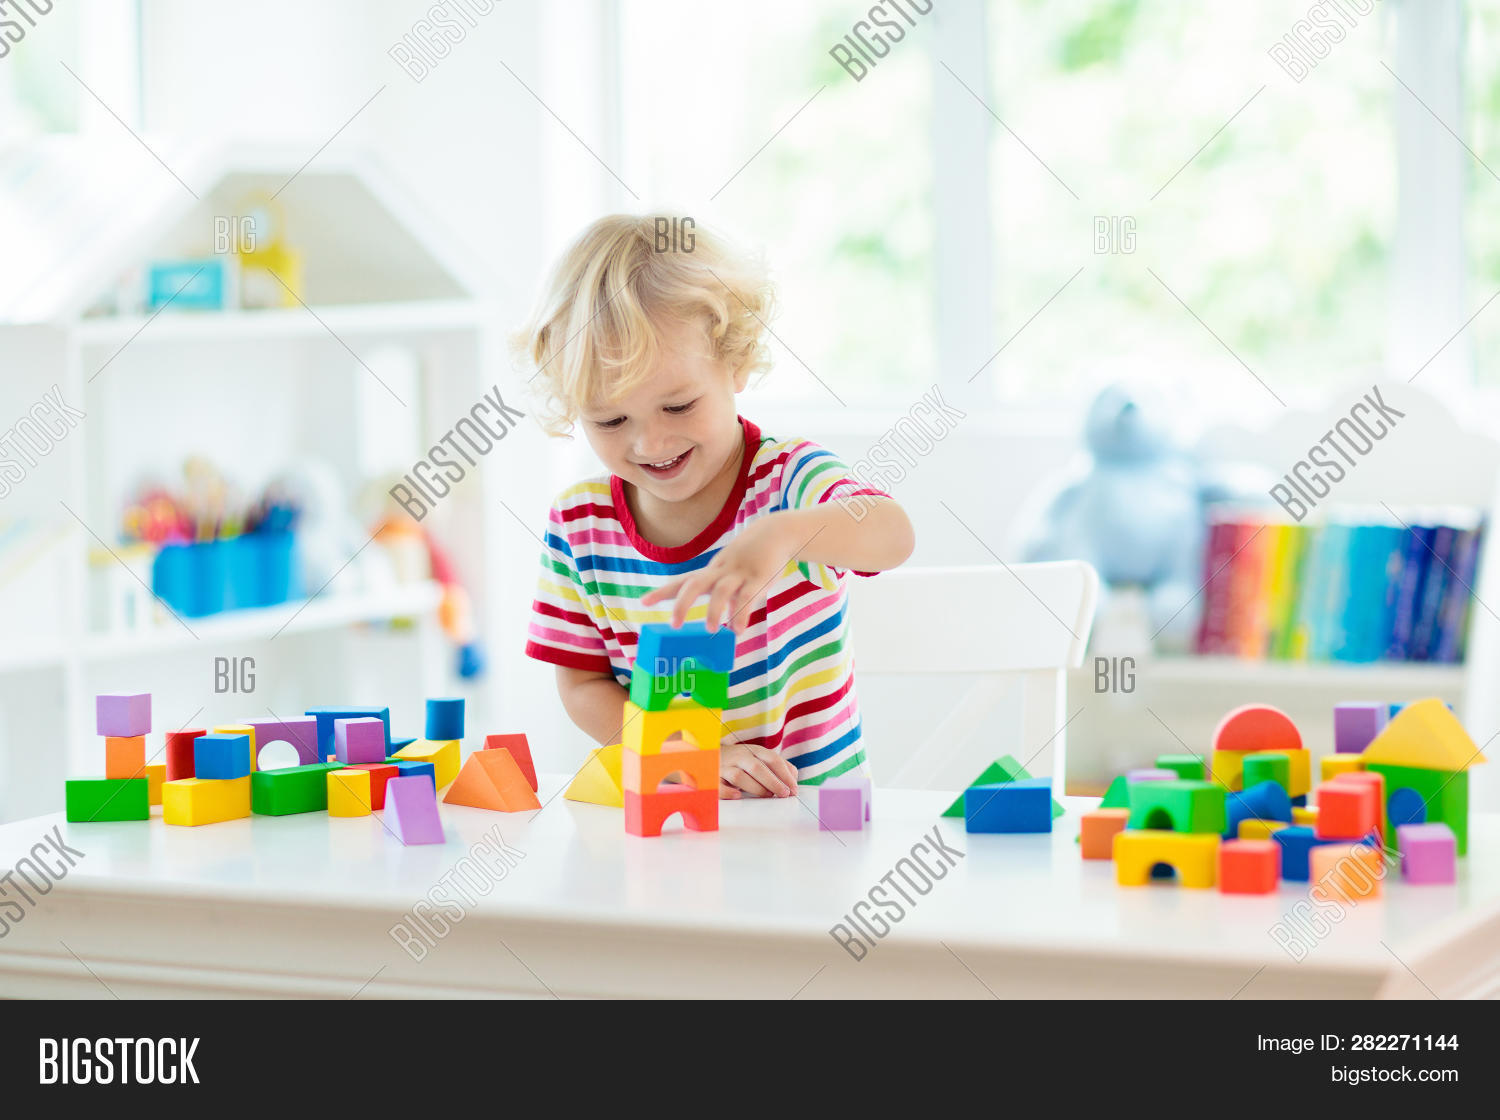 baby,bedroom,block,blond,boy,brick,build,building,child,childhood,children,color,colorful,crafts,creative,curly,daycare,desk,development,education,educational,fun,game,girl,happy,home,house,interior,kid,kindergarten,learn,learning,little,nursery,plastic,play,playing,preschool,preschooler,present,rainbow,room,table,toddler,tower,toy,window